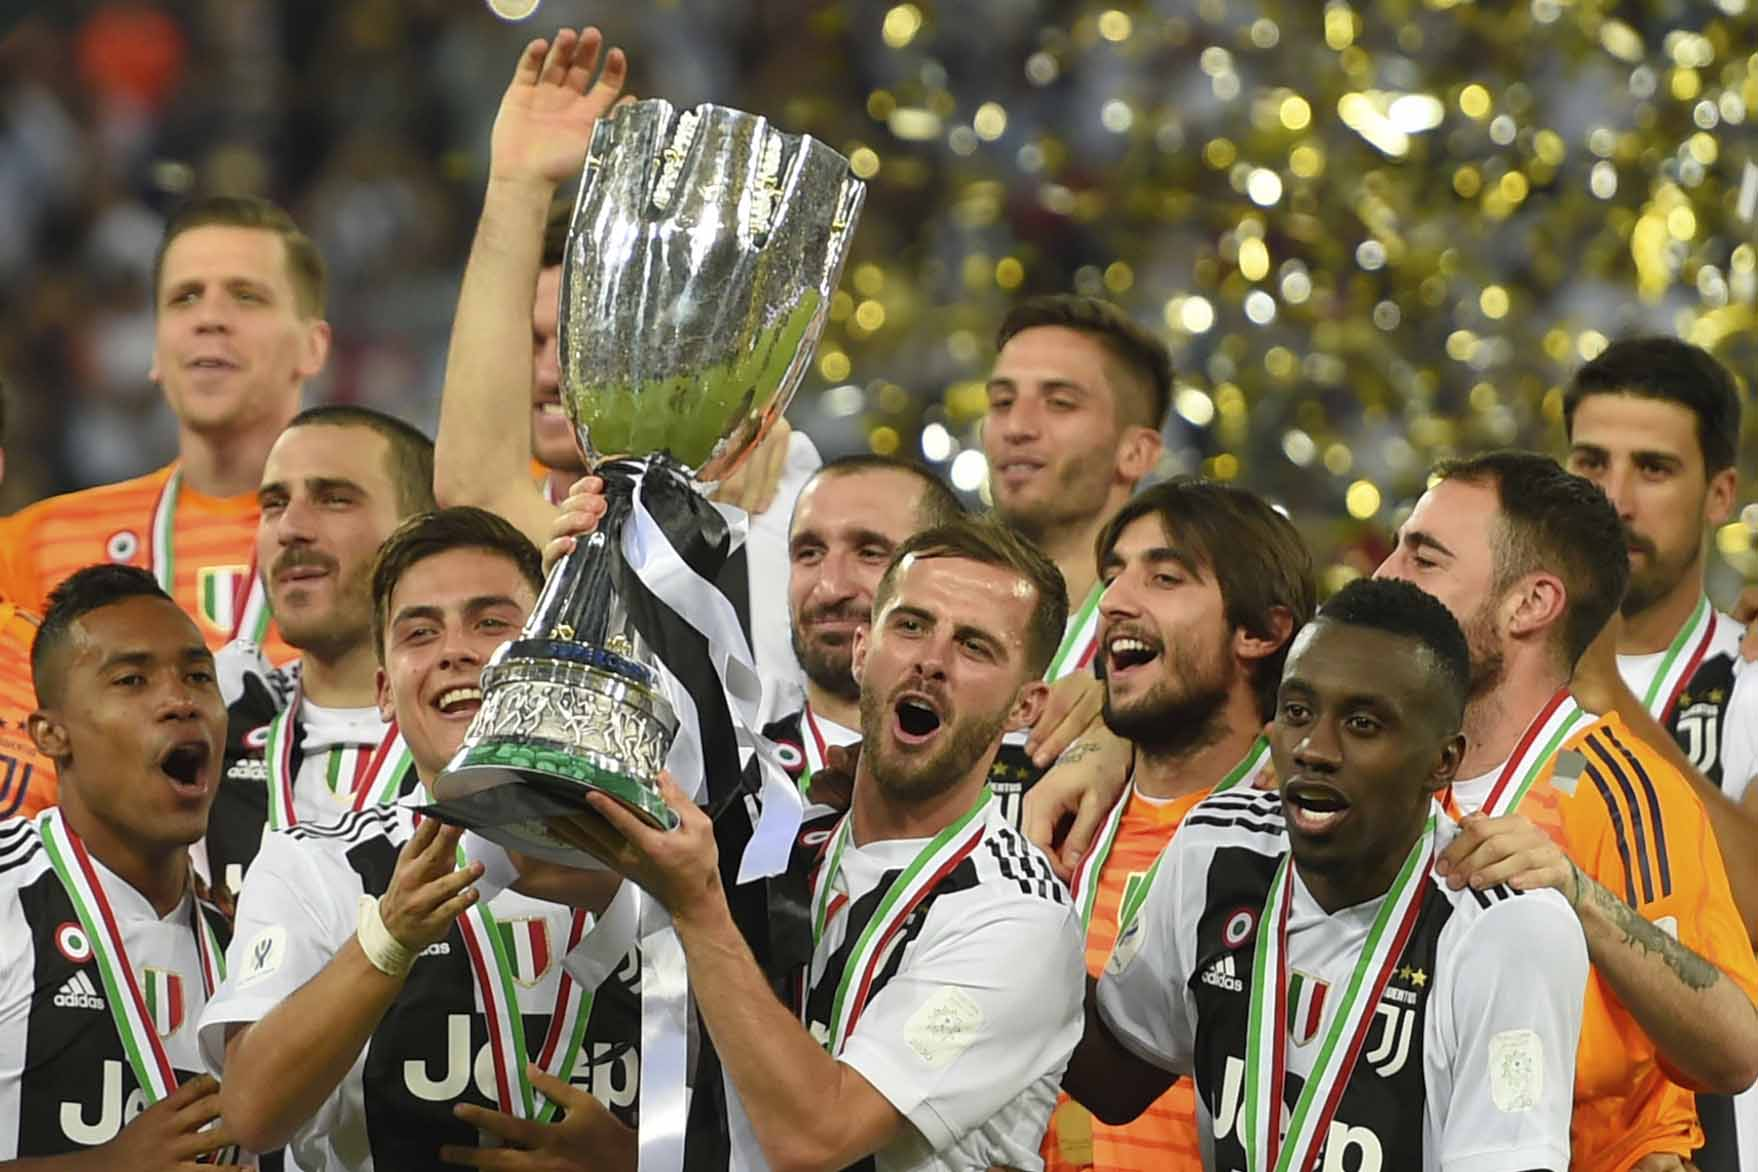 Juventus beat Milan to win Italian Super Cup in Jeddah